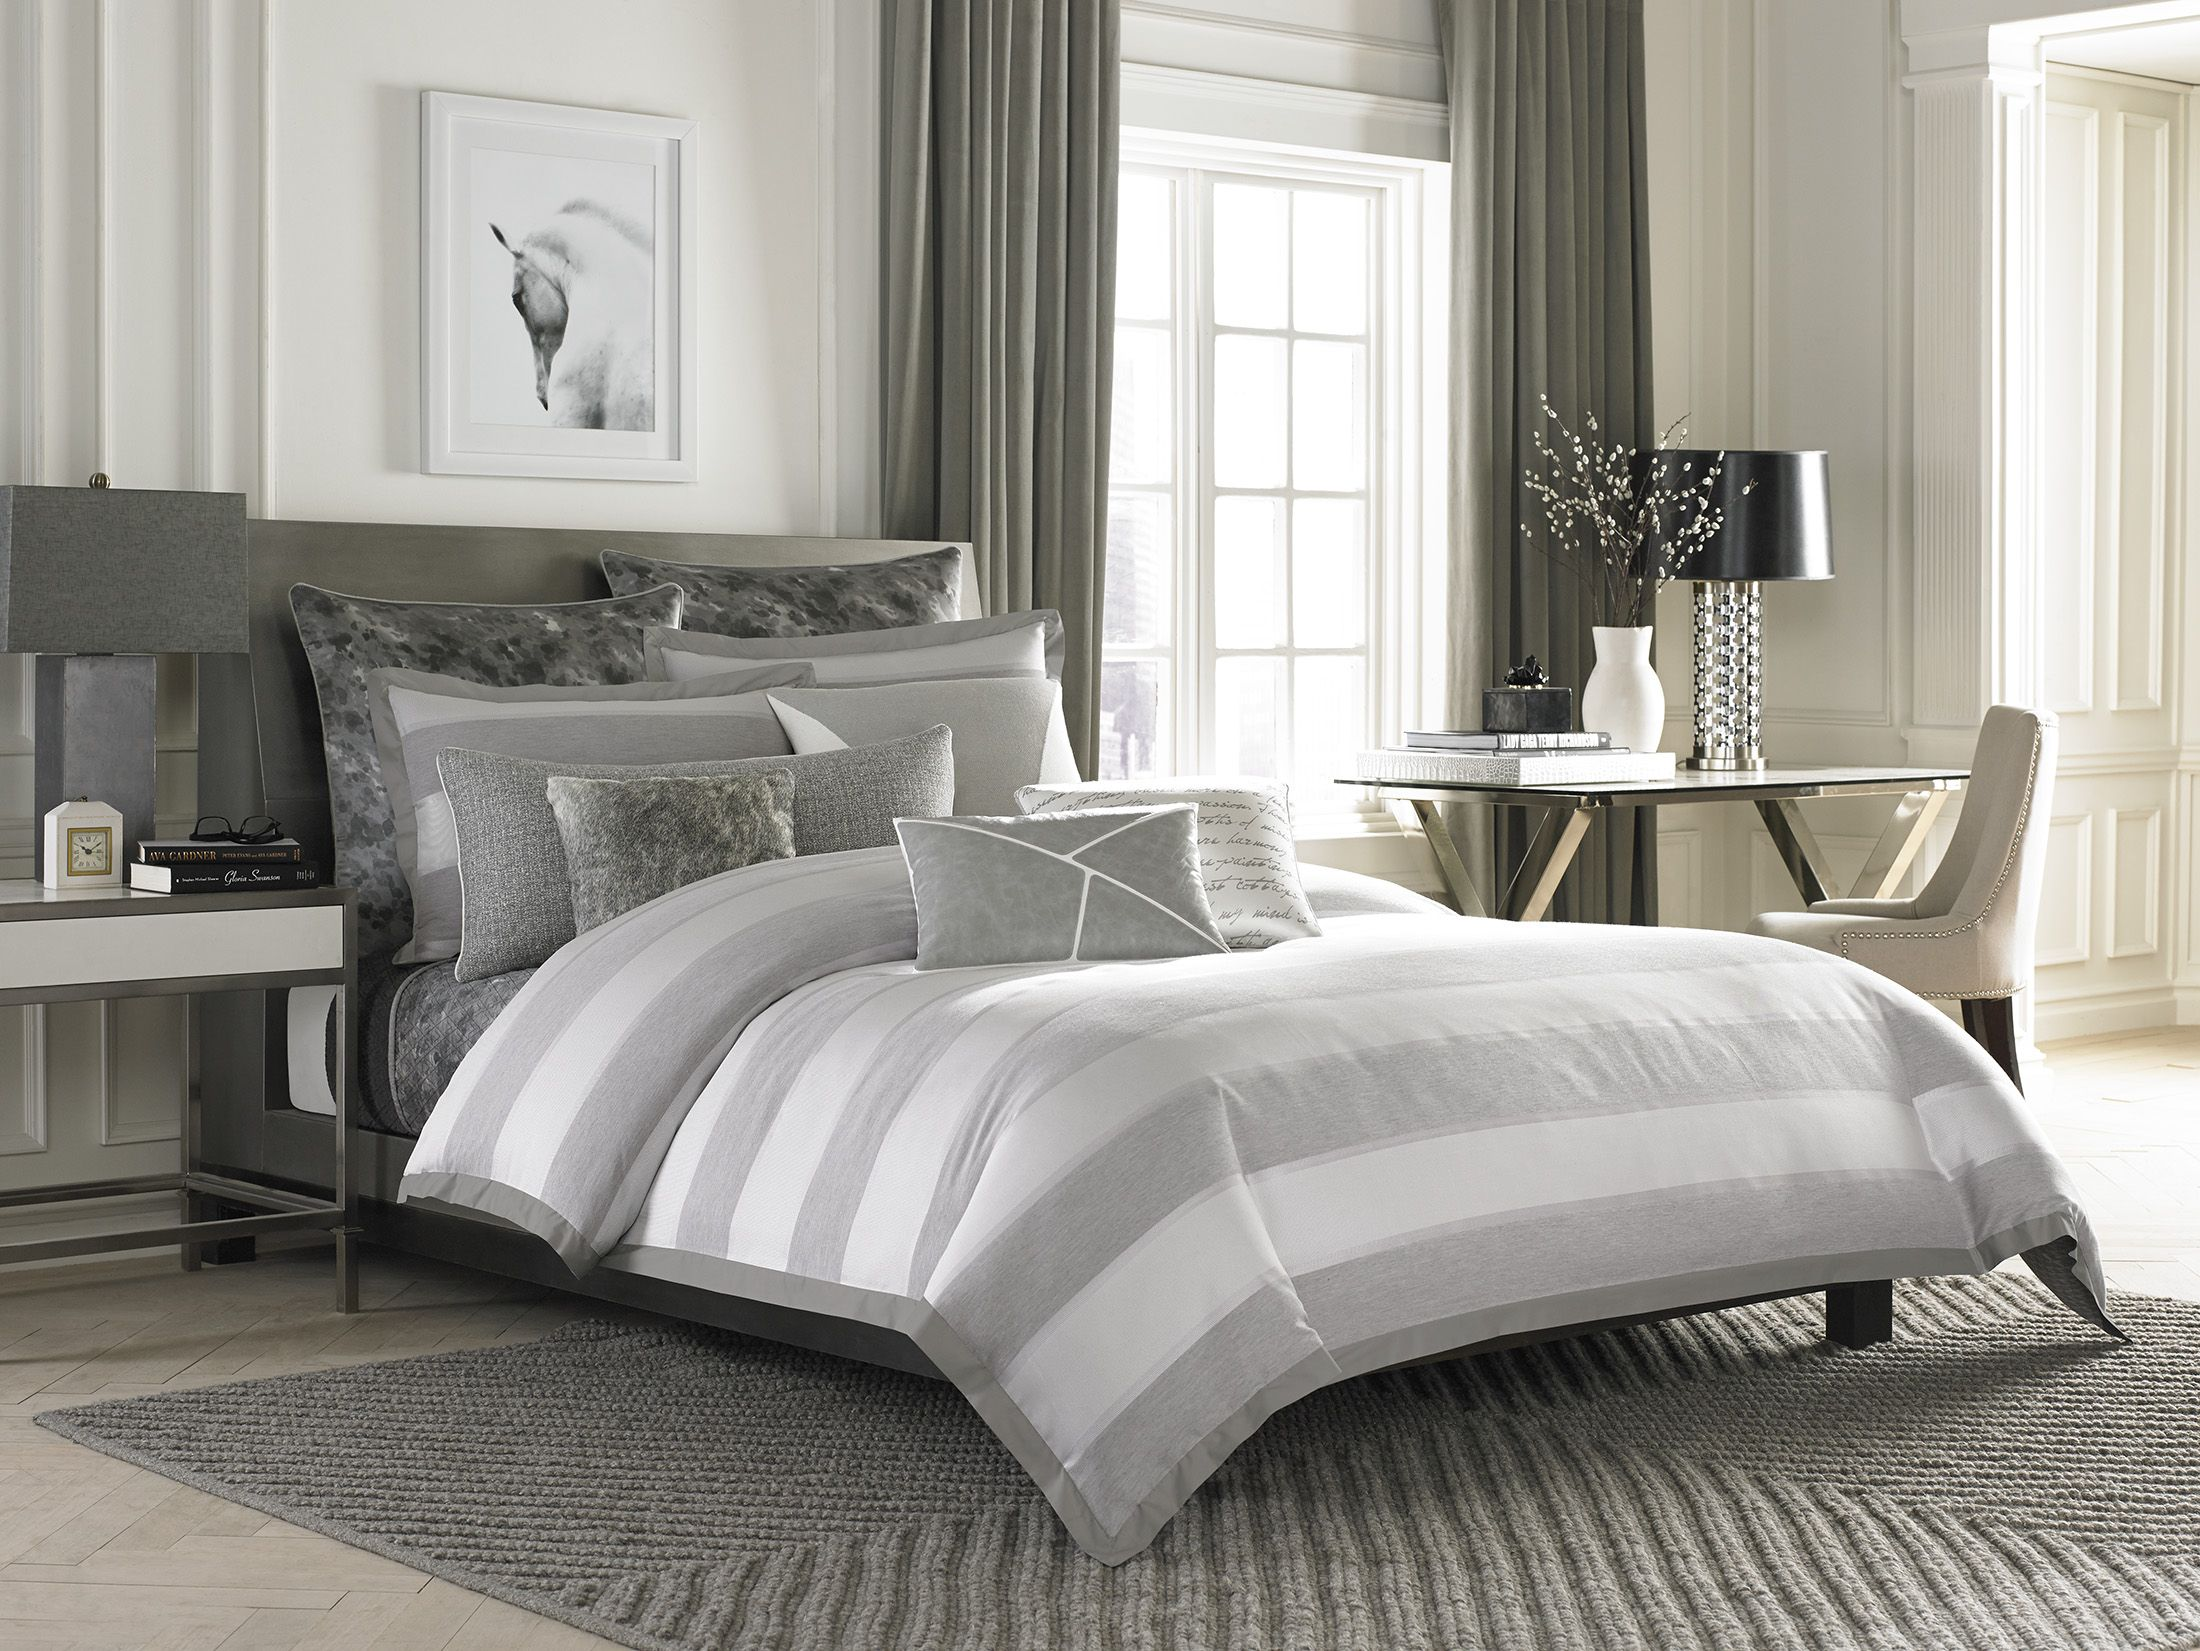 bedding h camuto launches pillow slideshow vince buenos comforter breakfast aires std